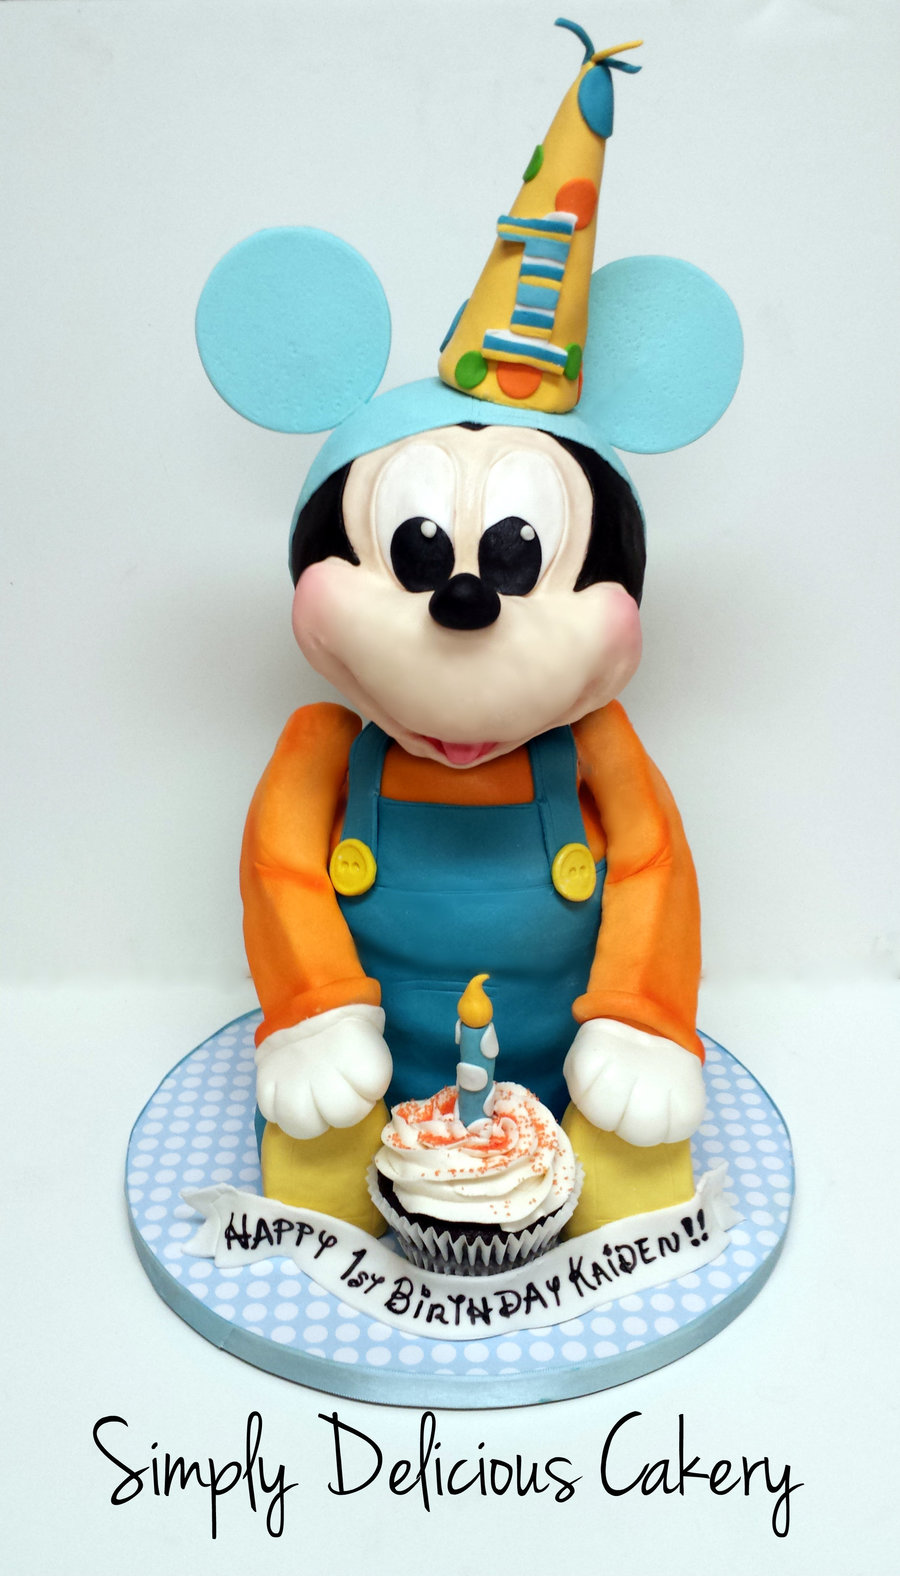 Baby Mickey Mouse Edible Cake Decorations 3d Baby Mickey Mouse 1st Birthday Fondant With Fondant Accents